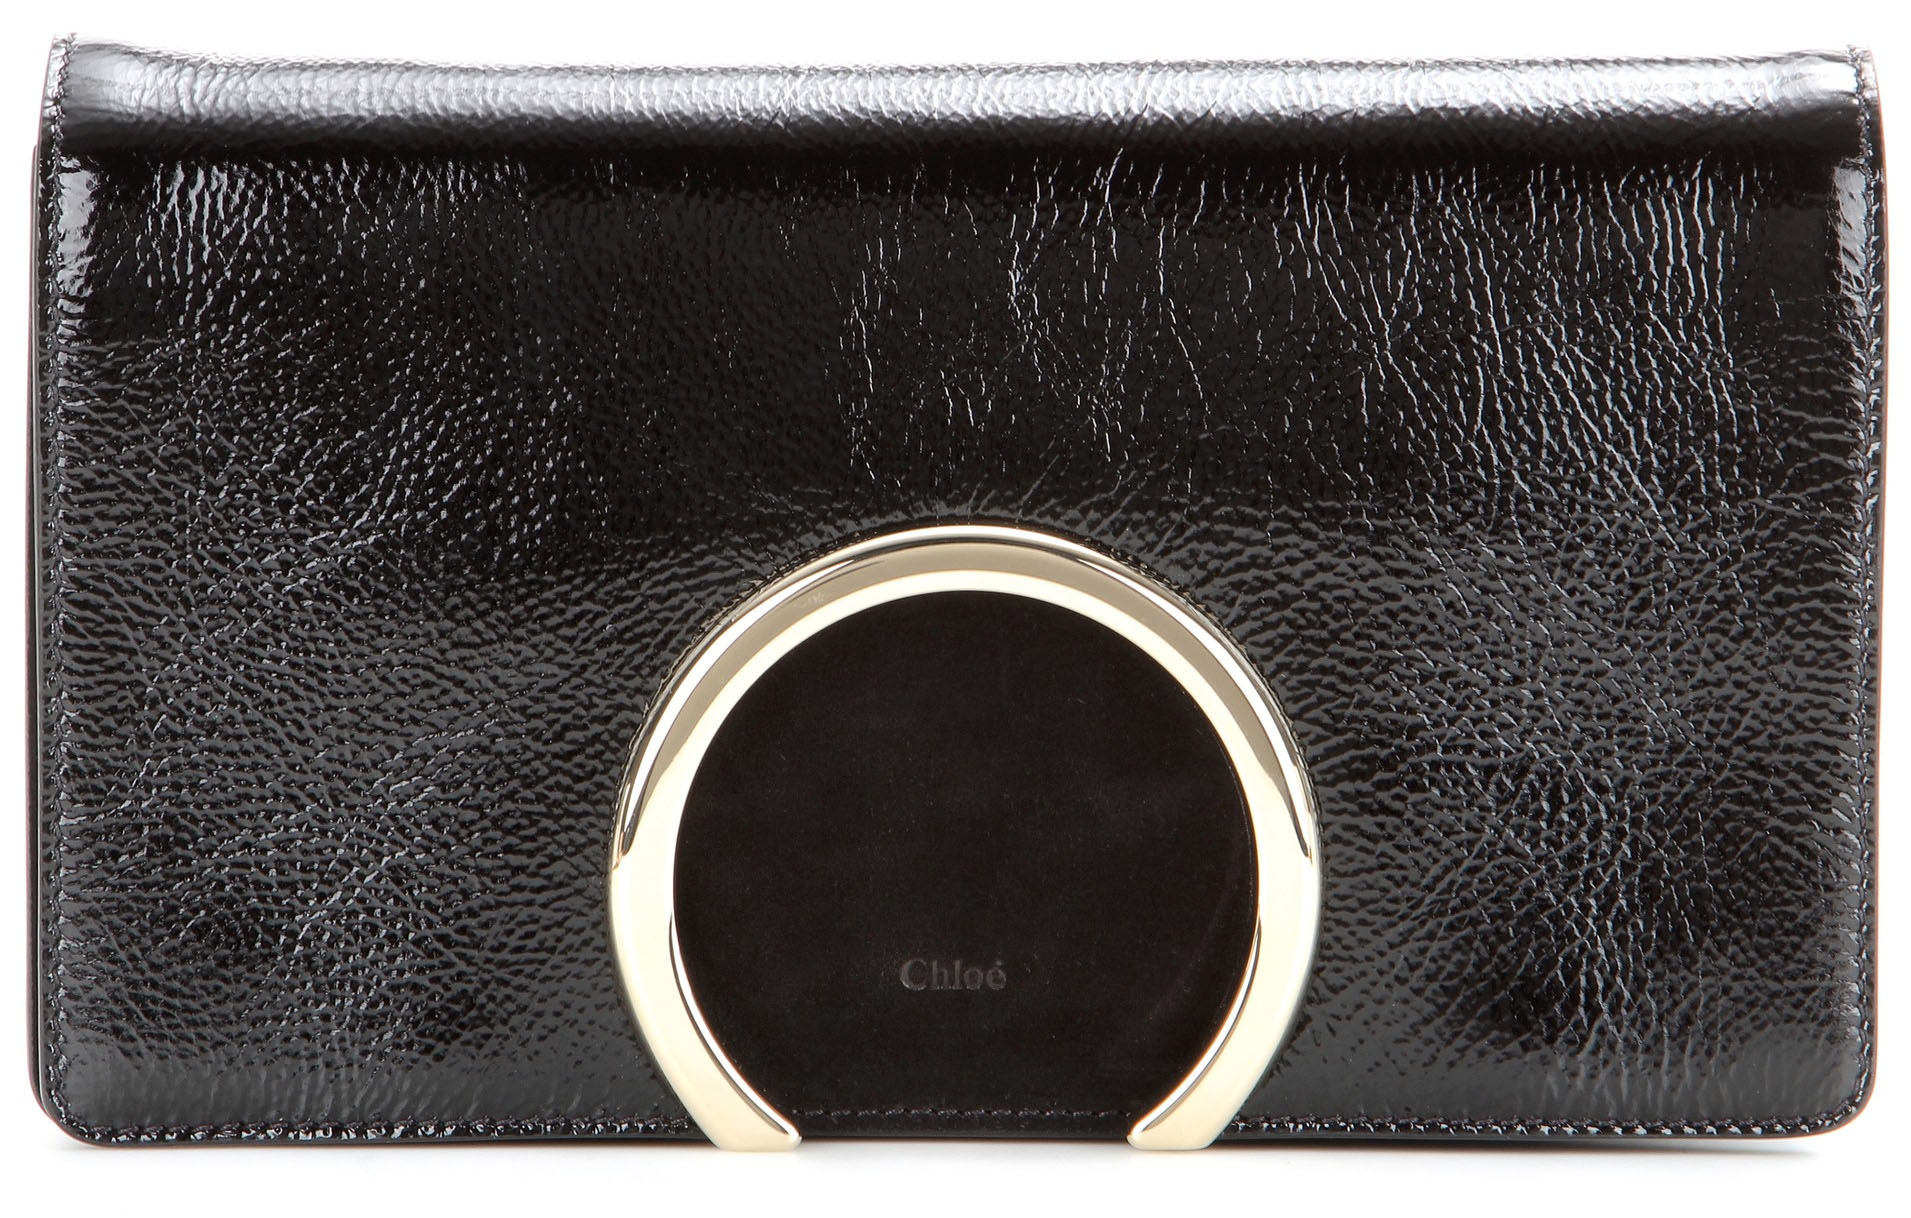 Chloe Gabrielle patent leather clutch